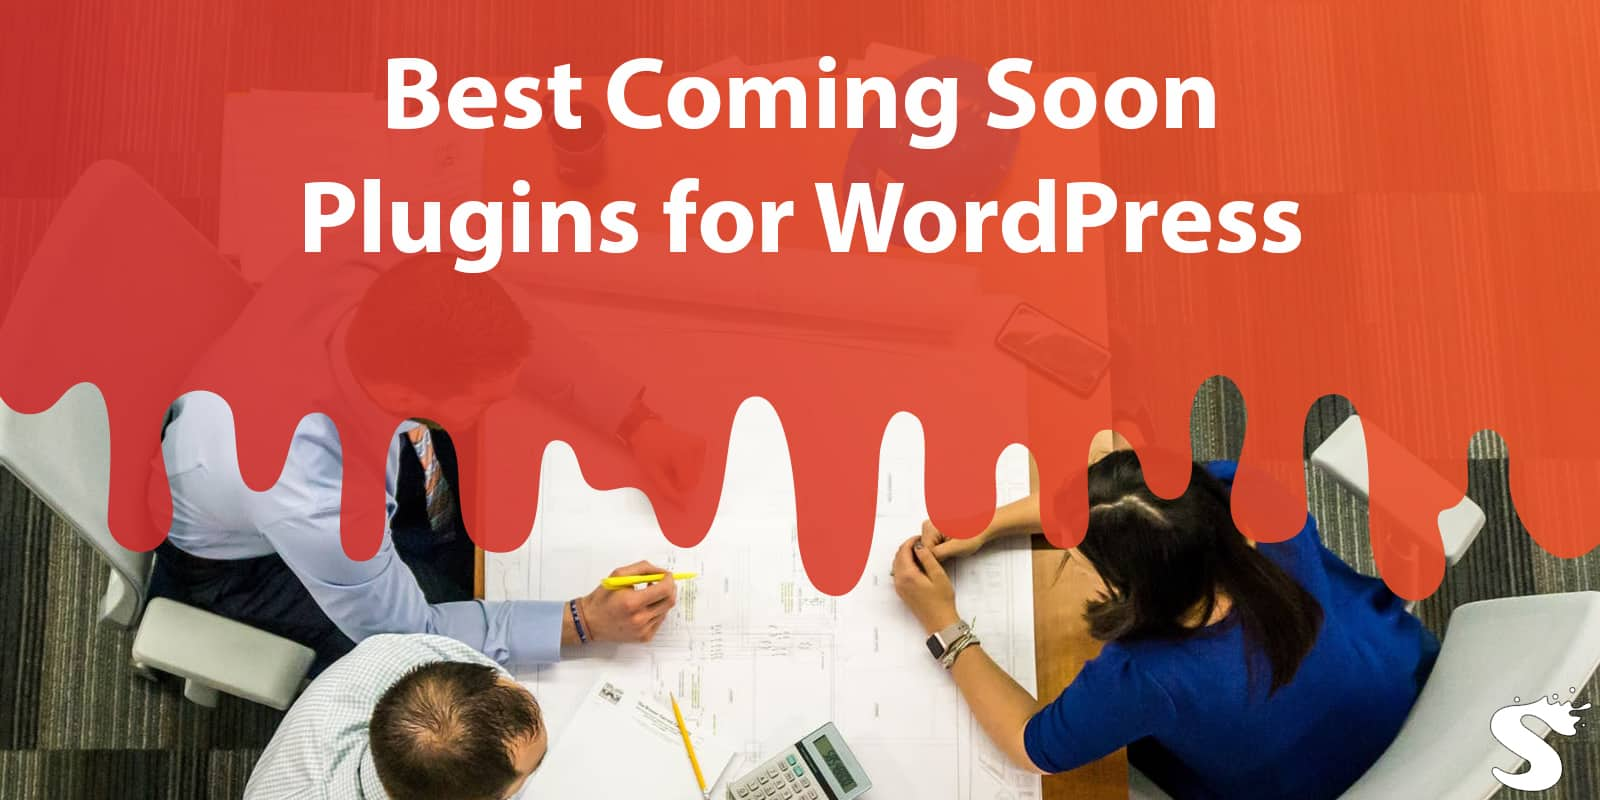 Top 8 Coming Soon Plugins & Themes for WordPress